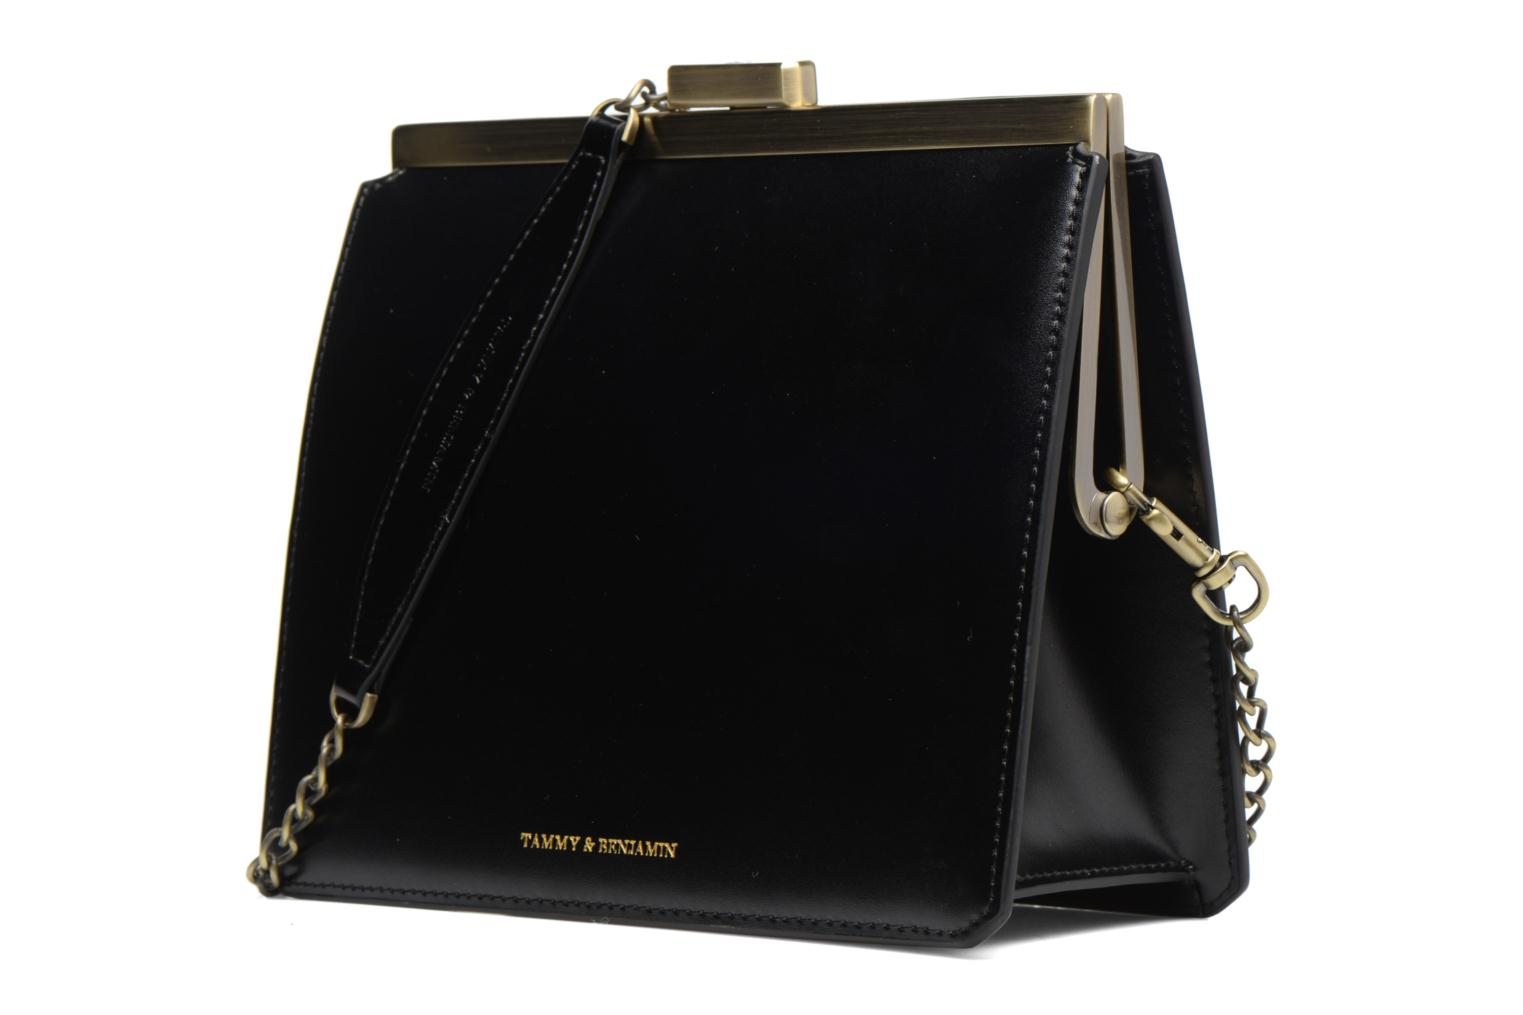 Handbags Tammy & Benjamin Crossbody Jeanne Black model view